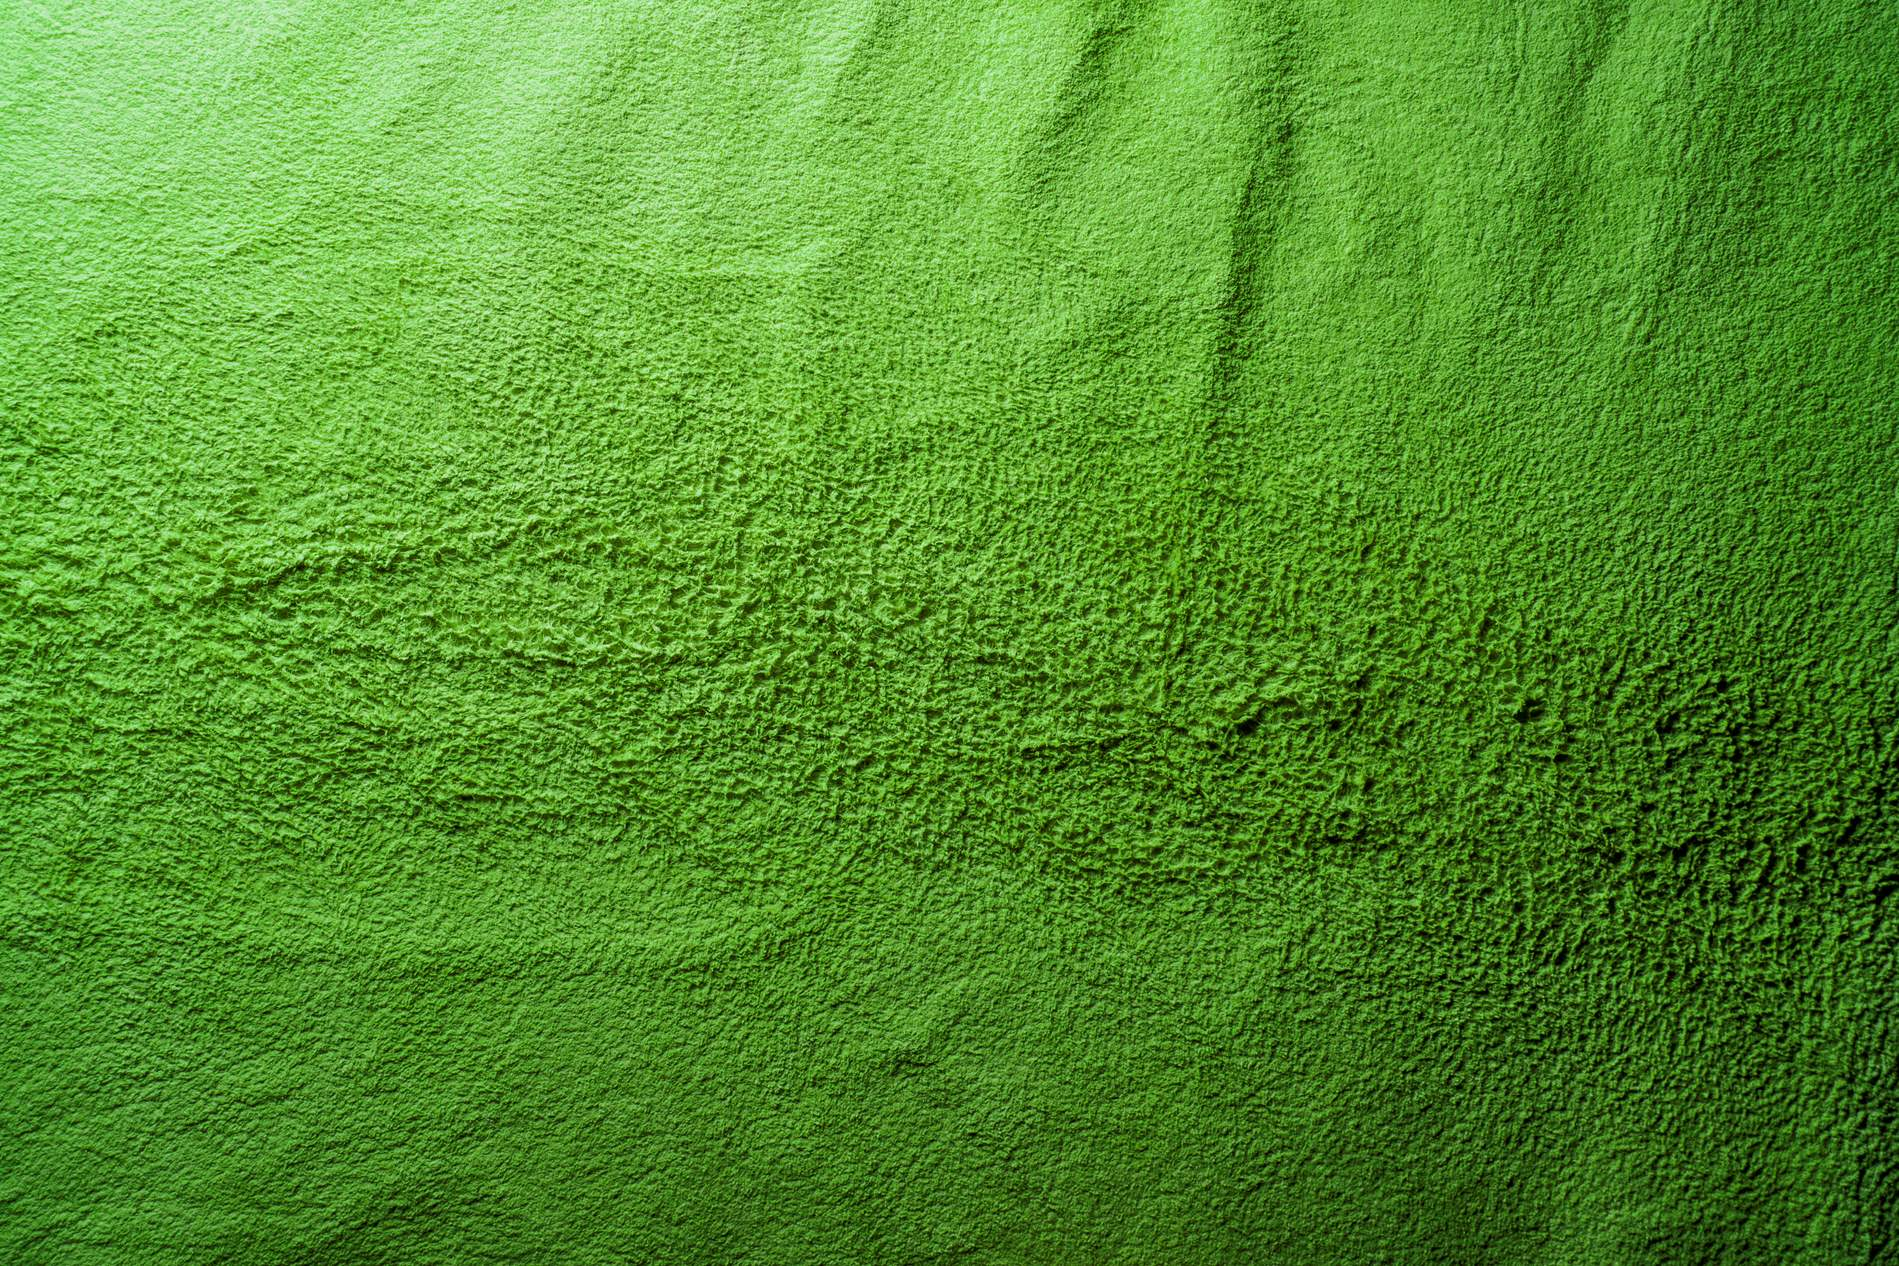 vintage green soft texture background photohdx good afternoon clipart images good afternoon clipart free